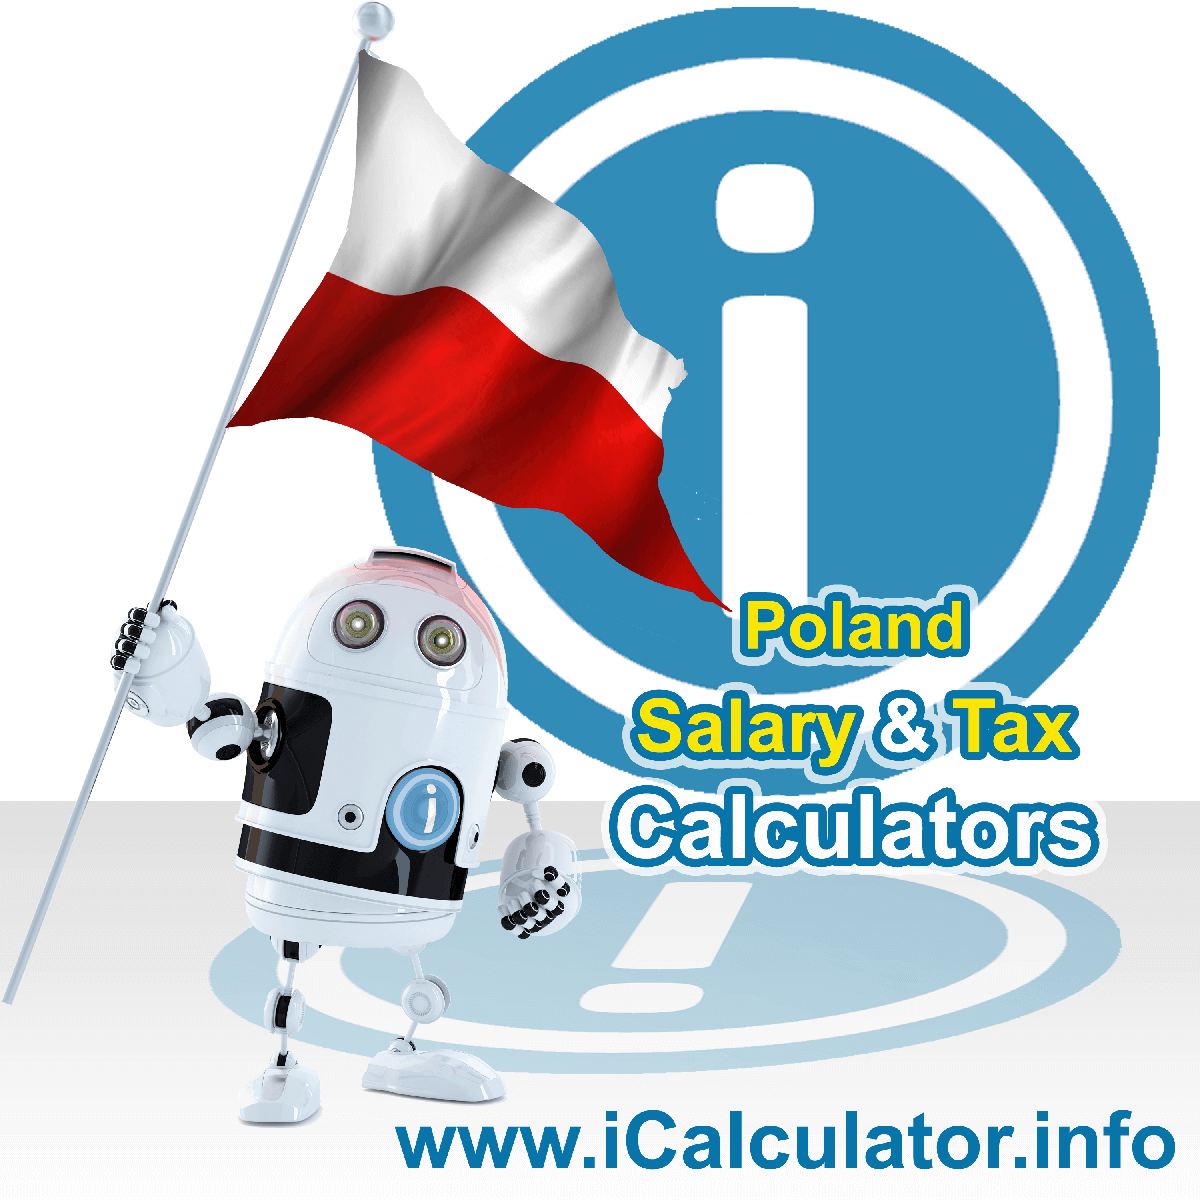 Poland Wage Calculator. This image shows the Poland flag and information relating to the tax formula for the Poland Tax Calculator